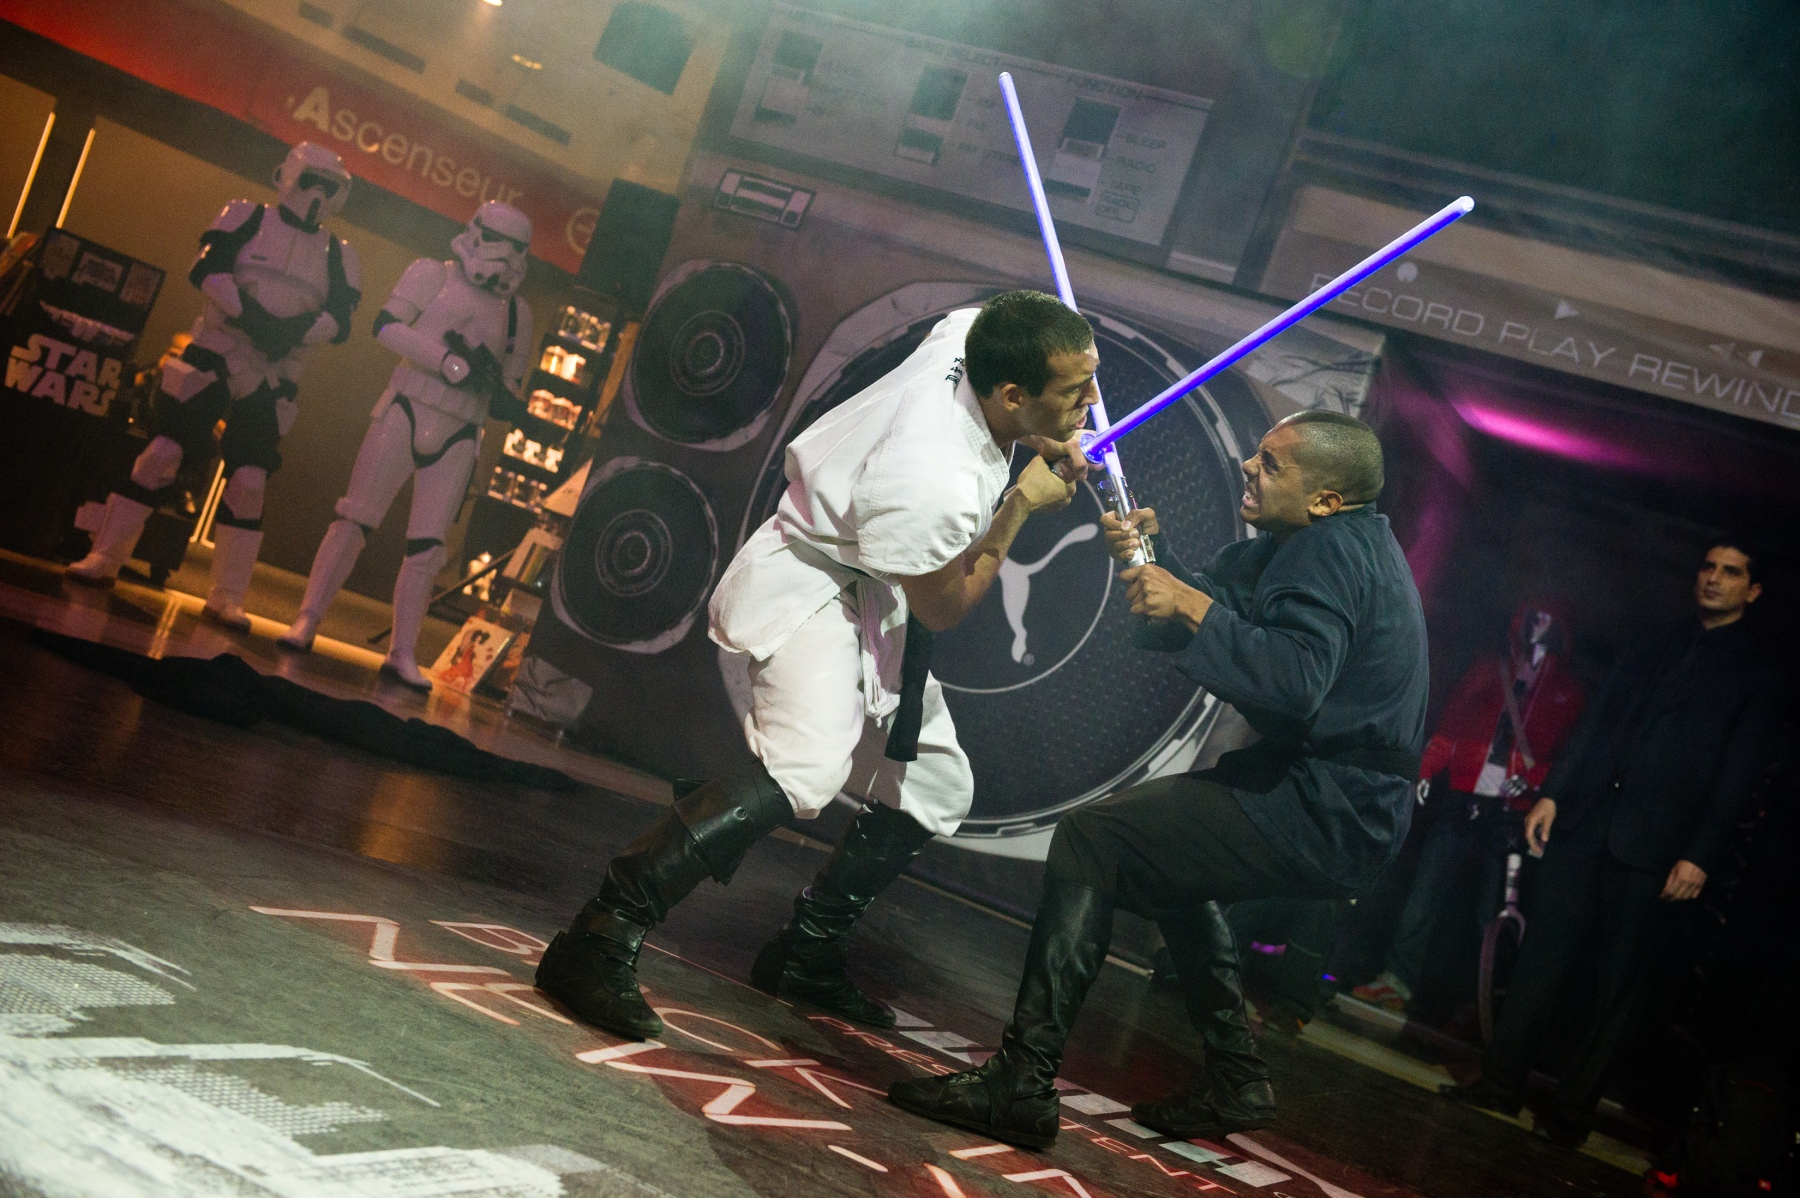 PARIS, FRANCE - SEPTEMBER 13: Cascade Demo Team members perform a Lightsaber fight at the Star Wars Saga release party at Virgin Megastore Champs-Elysees on September 13, 2011 in Paris, France. (Photo by Samuel Dietz/WireImage)